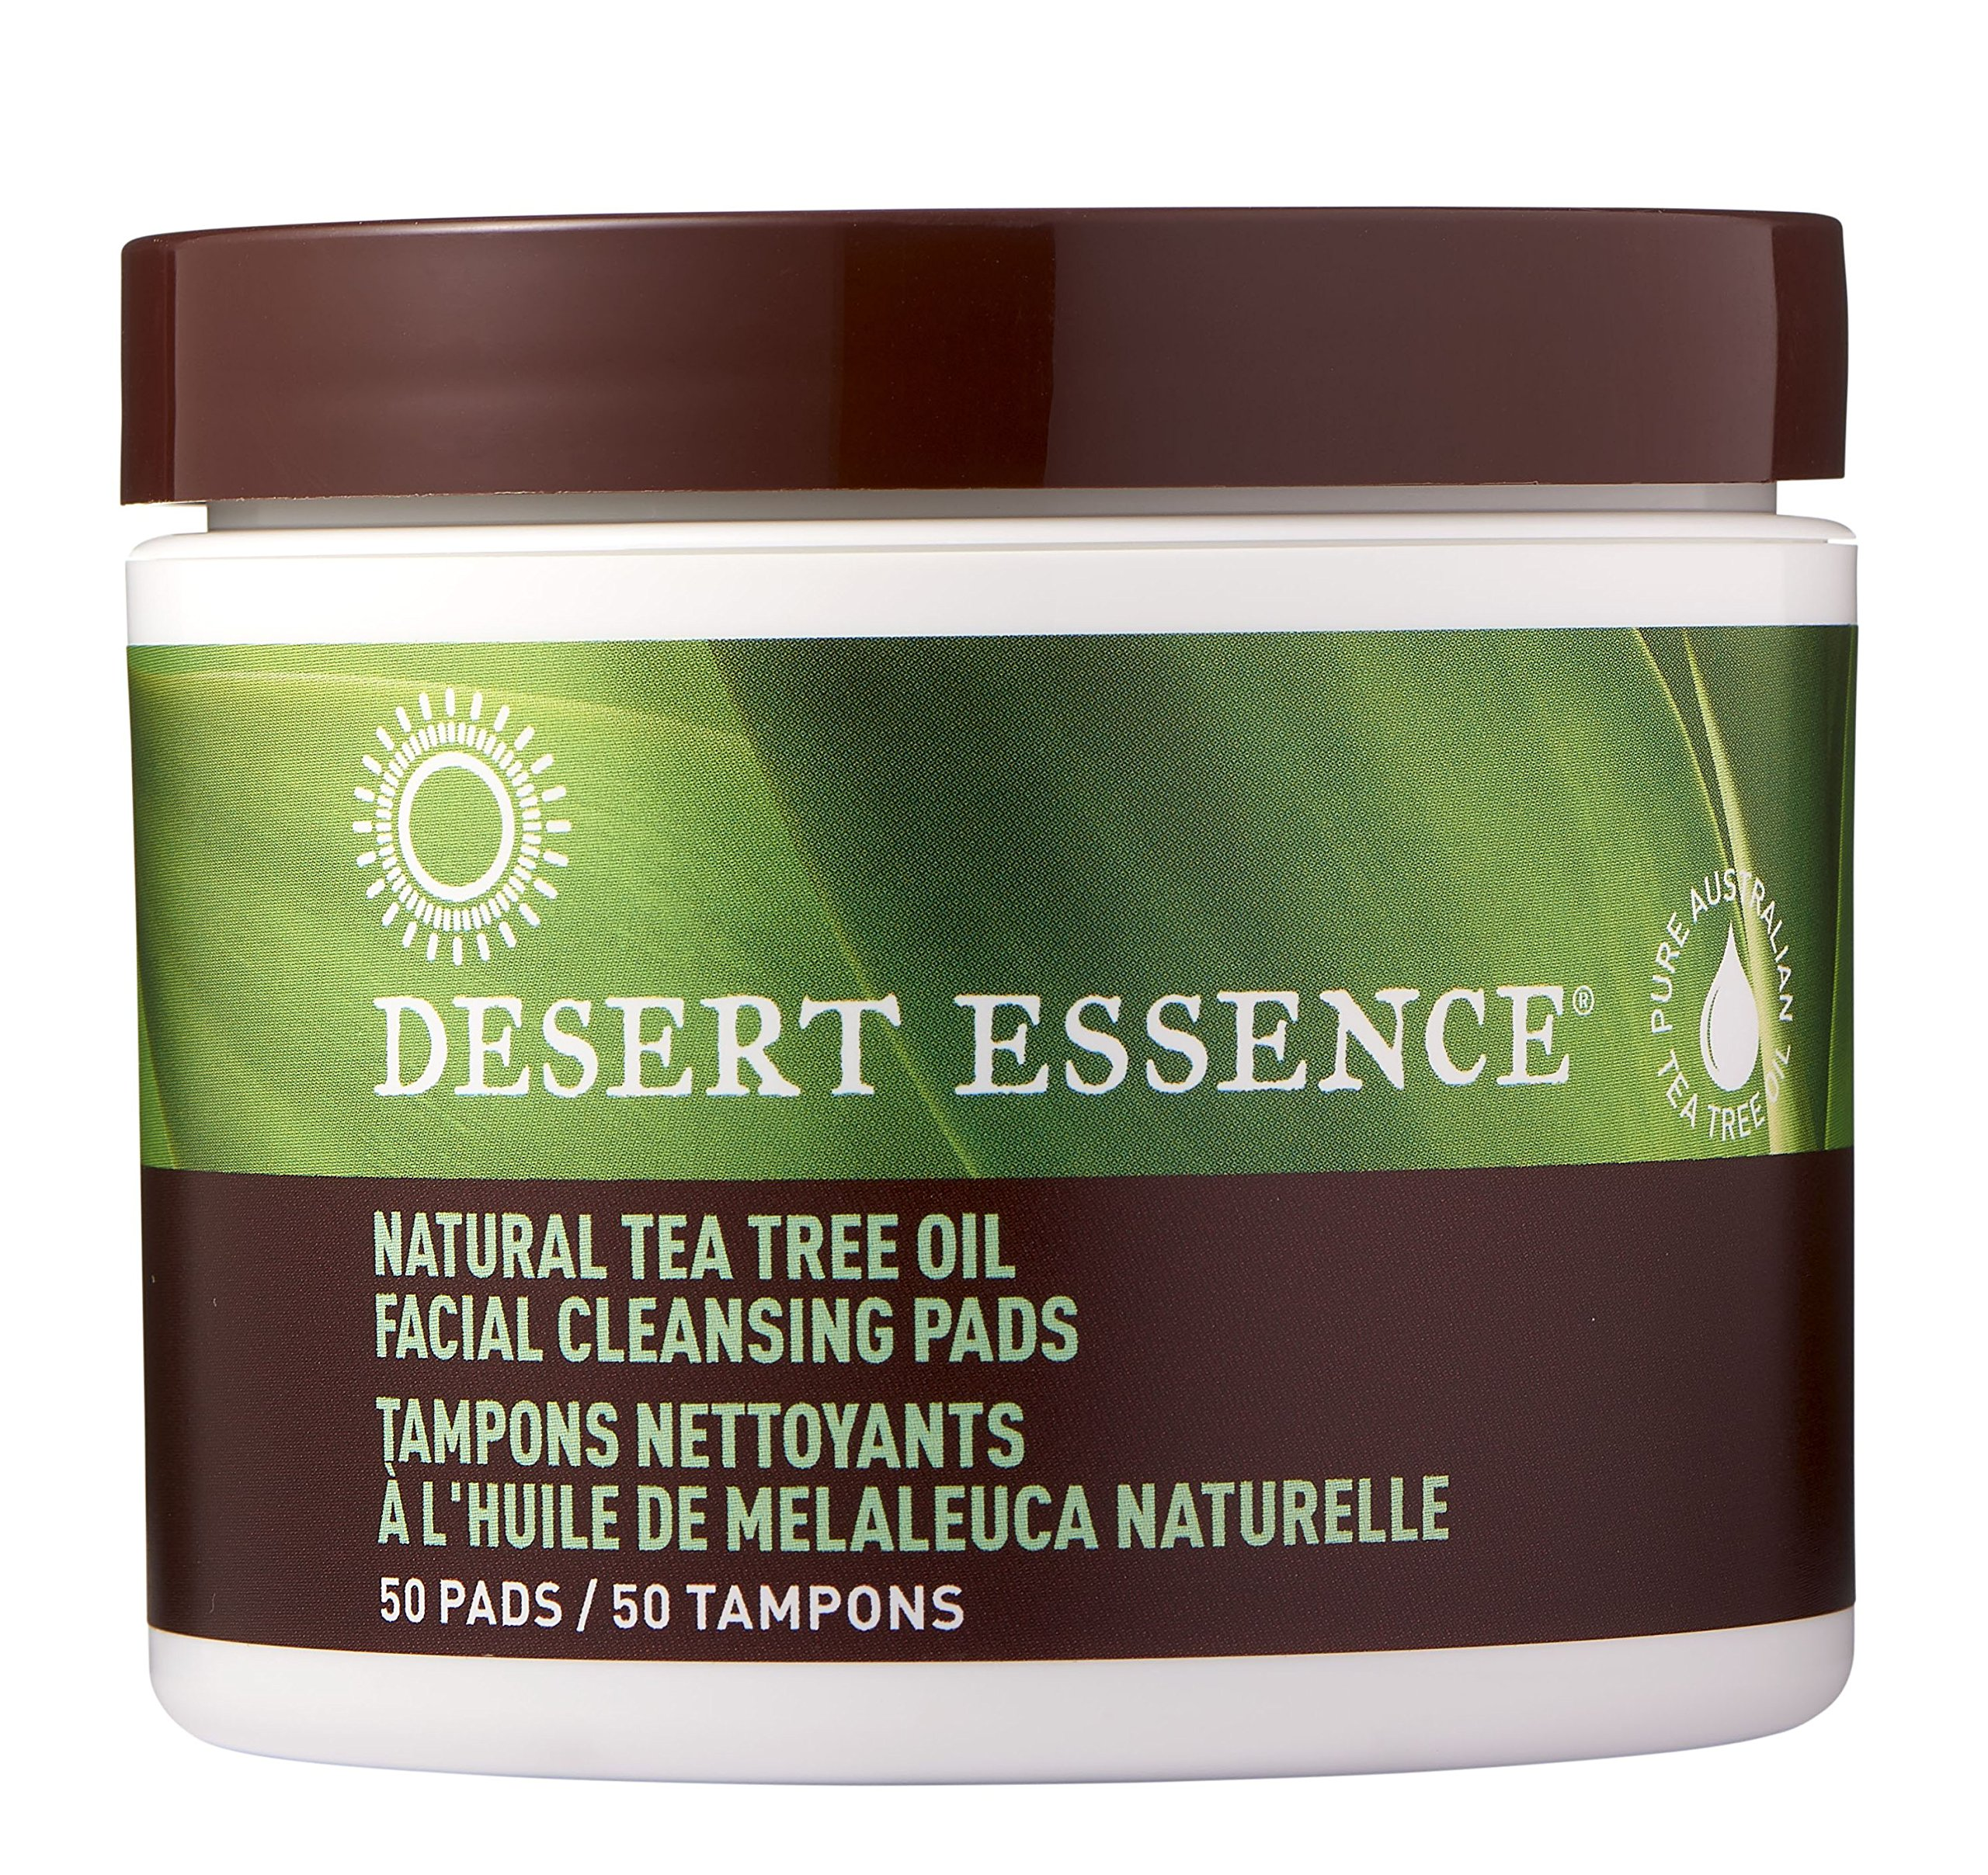 Desert essence facial moisturizer for that